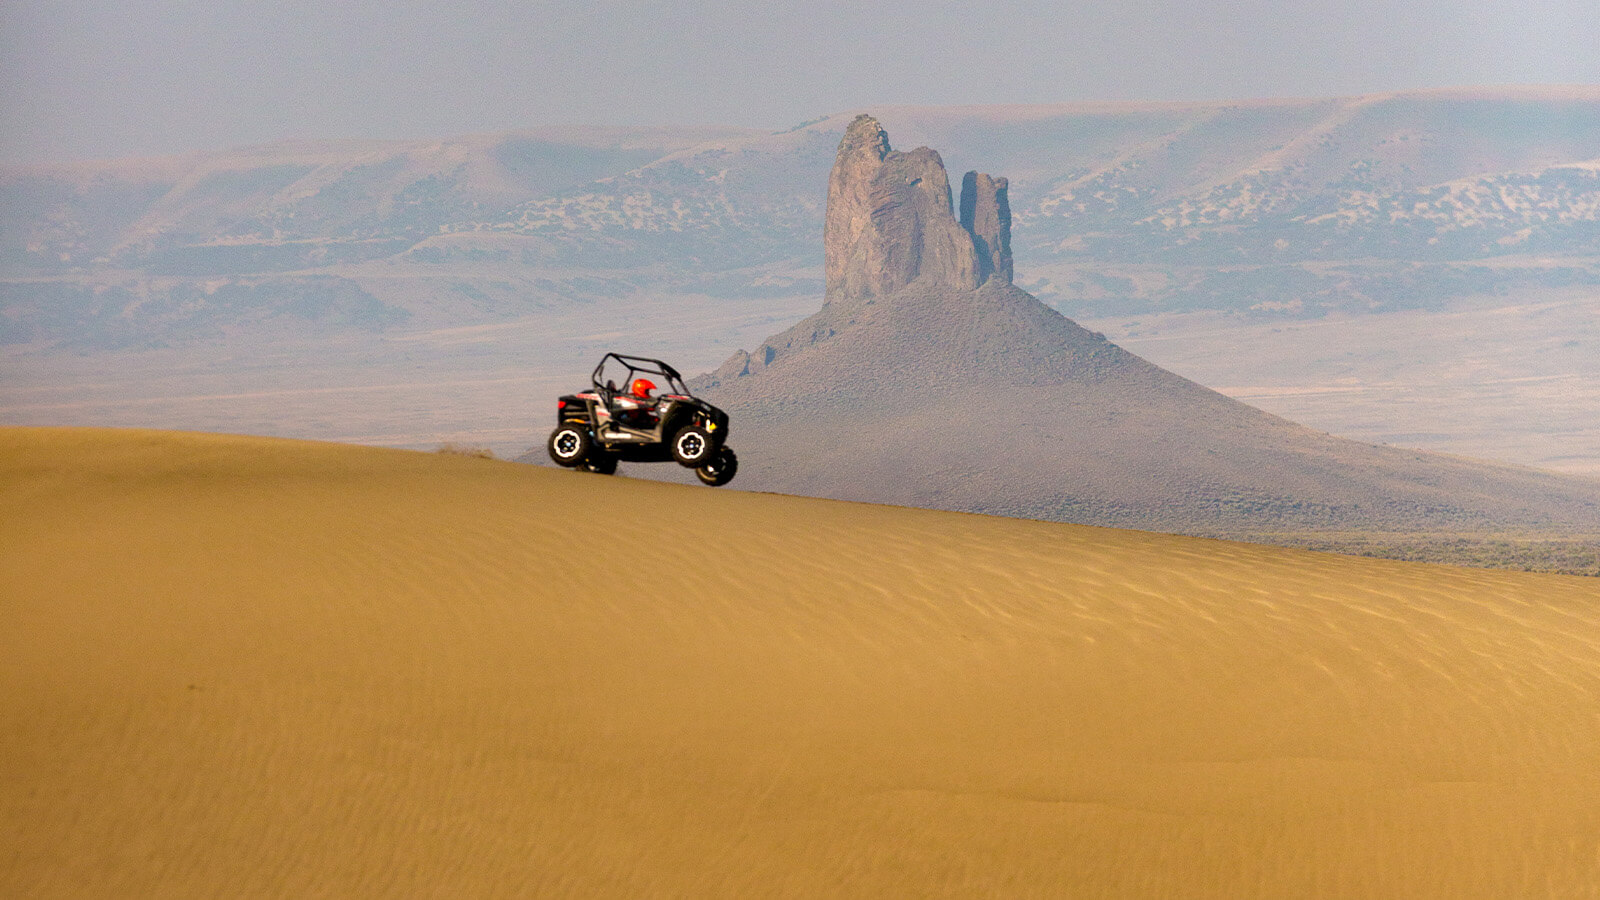 Off-road vehicle jumping a sand dune